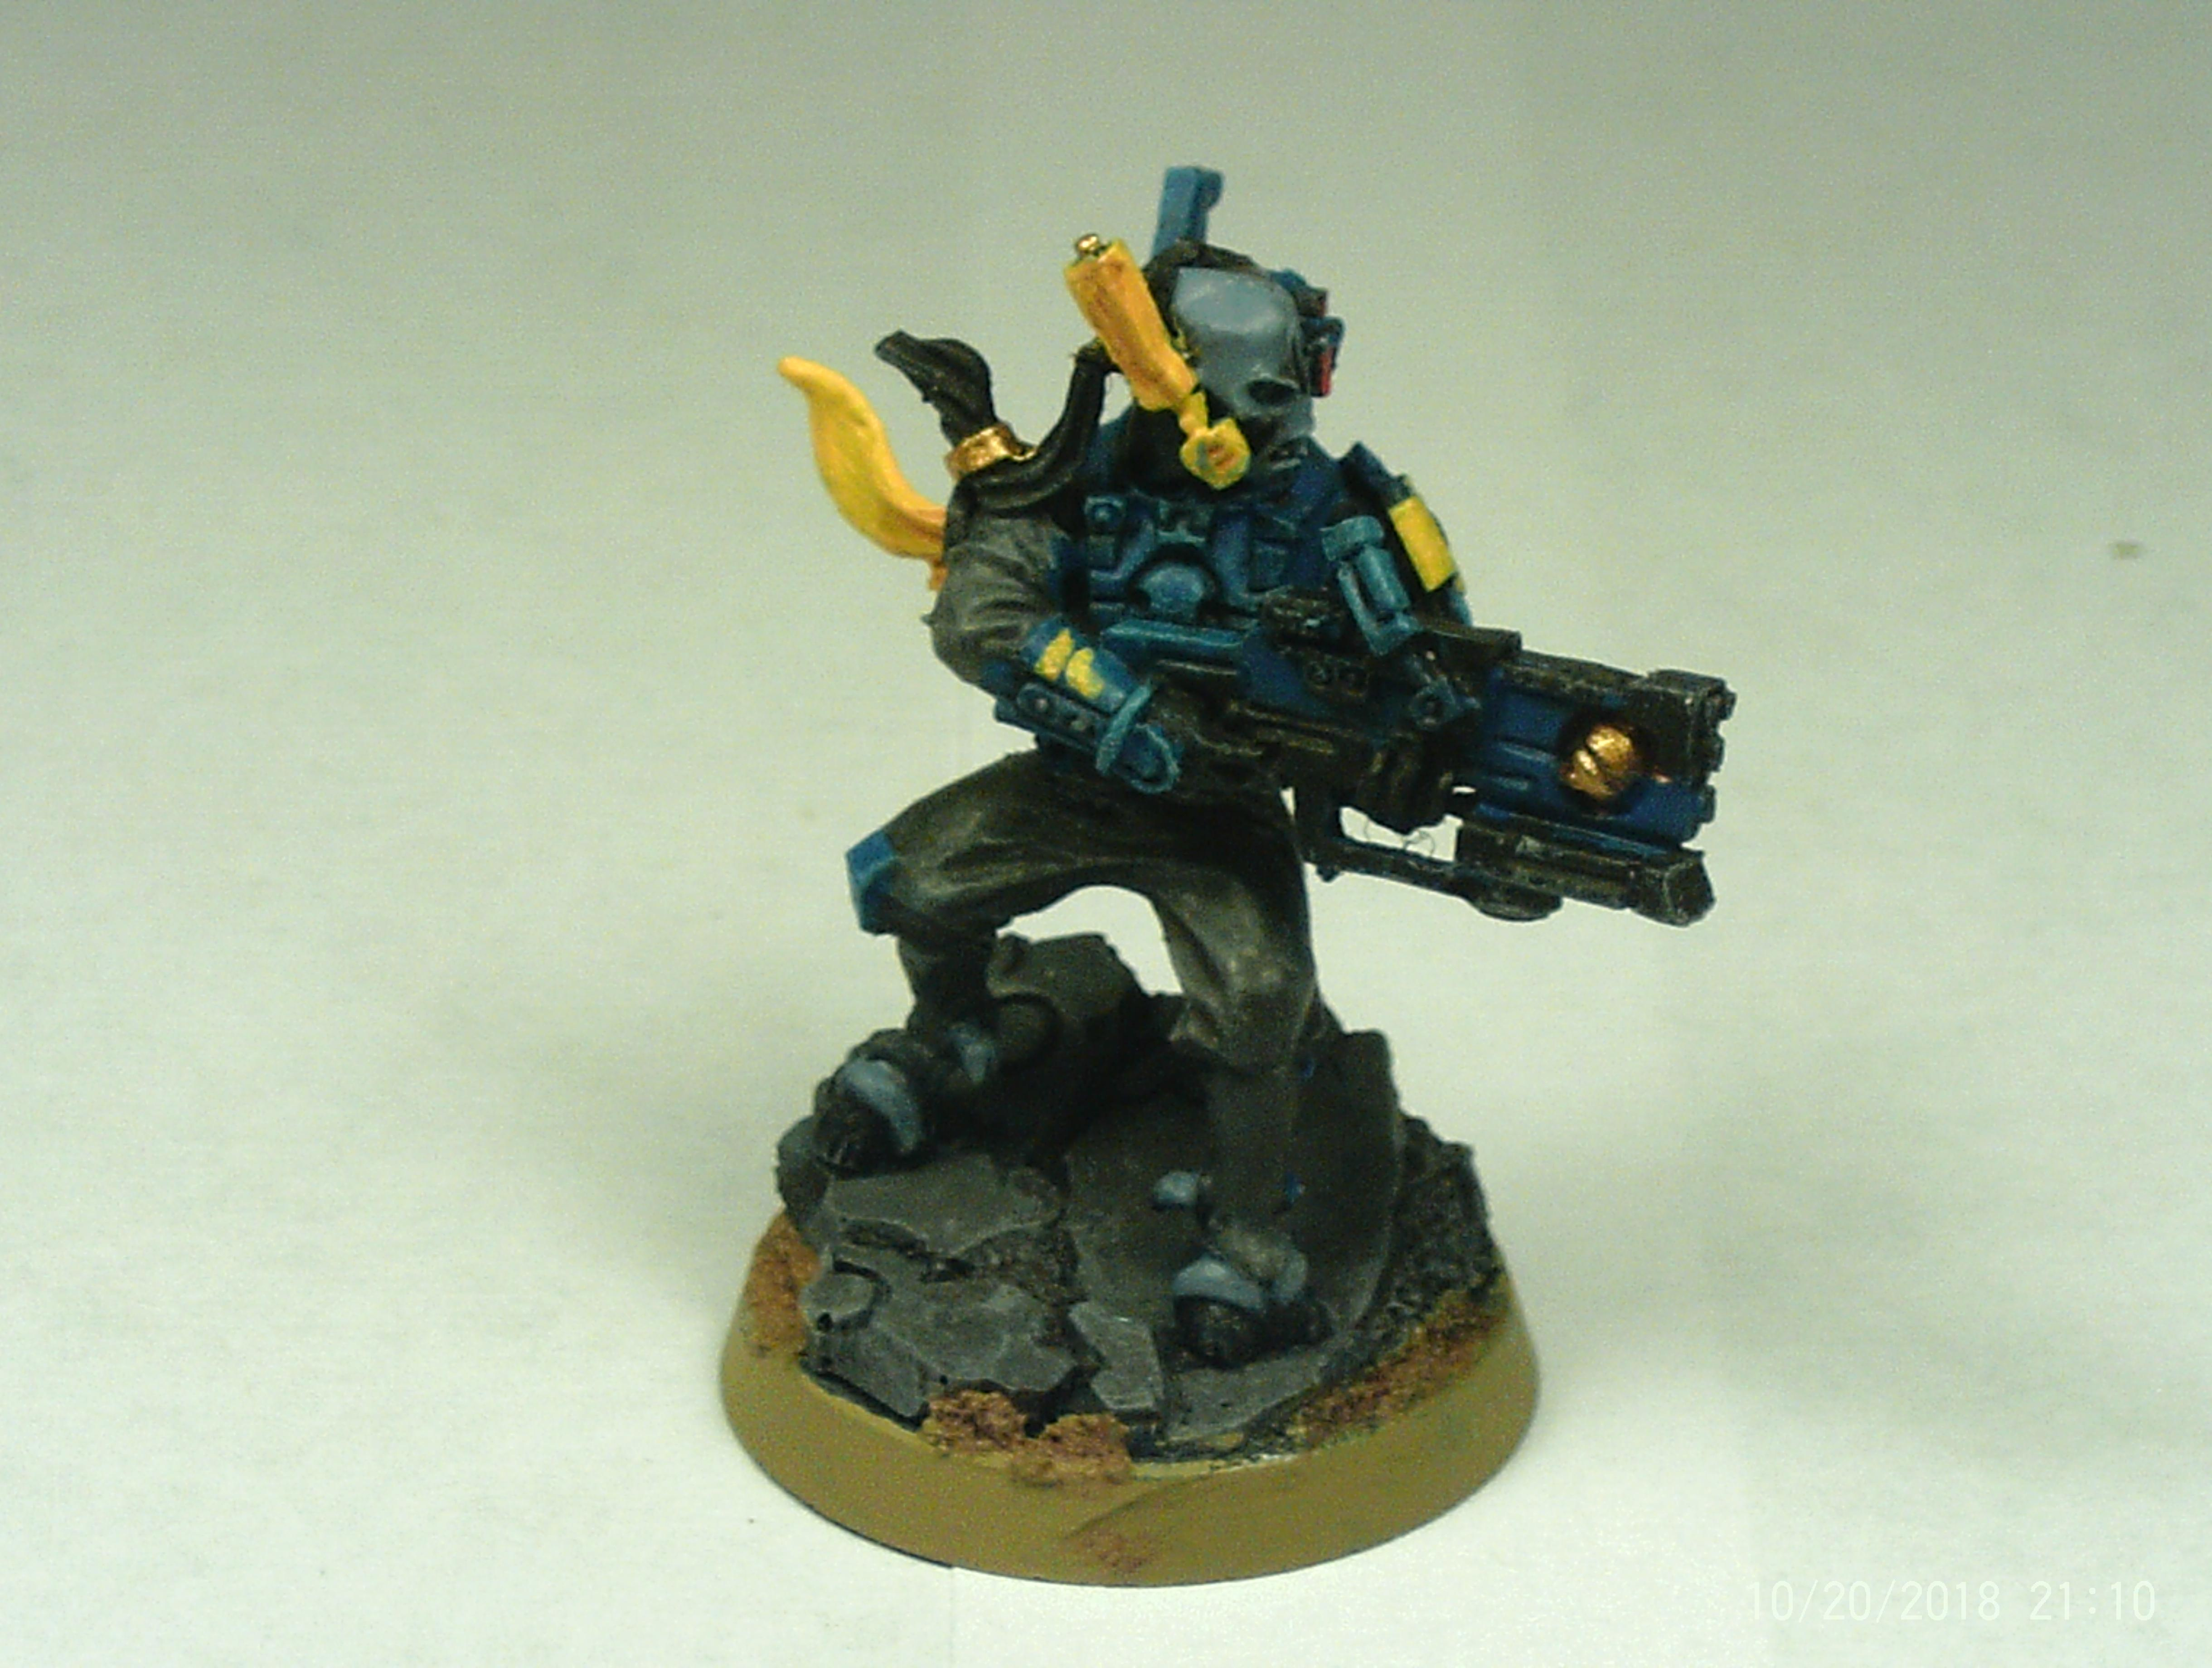 Caste, Darkstrider, Empire, Fire, Markerlight, Pathfinders, Scouts, Tau, Warriors